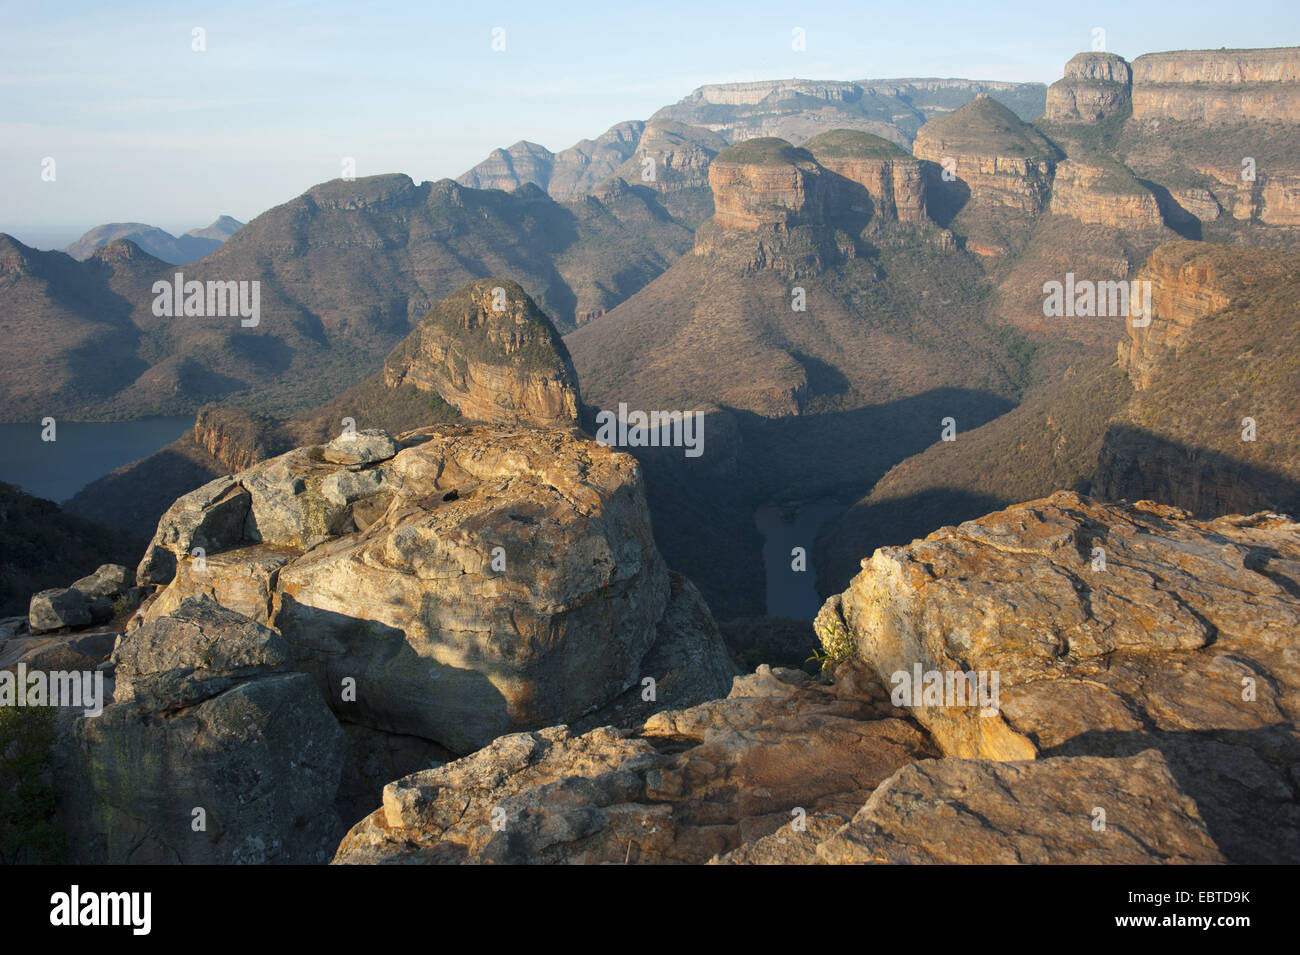 the famous round rocks 'The Tree Rondavels' in the Blyde River Canyon, South Africa, Mpumalanga, Panorama - Stock Image